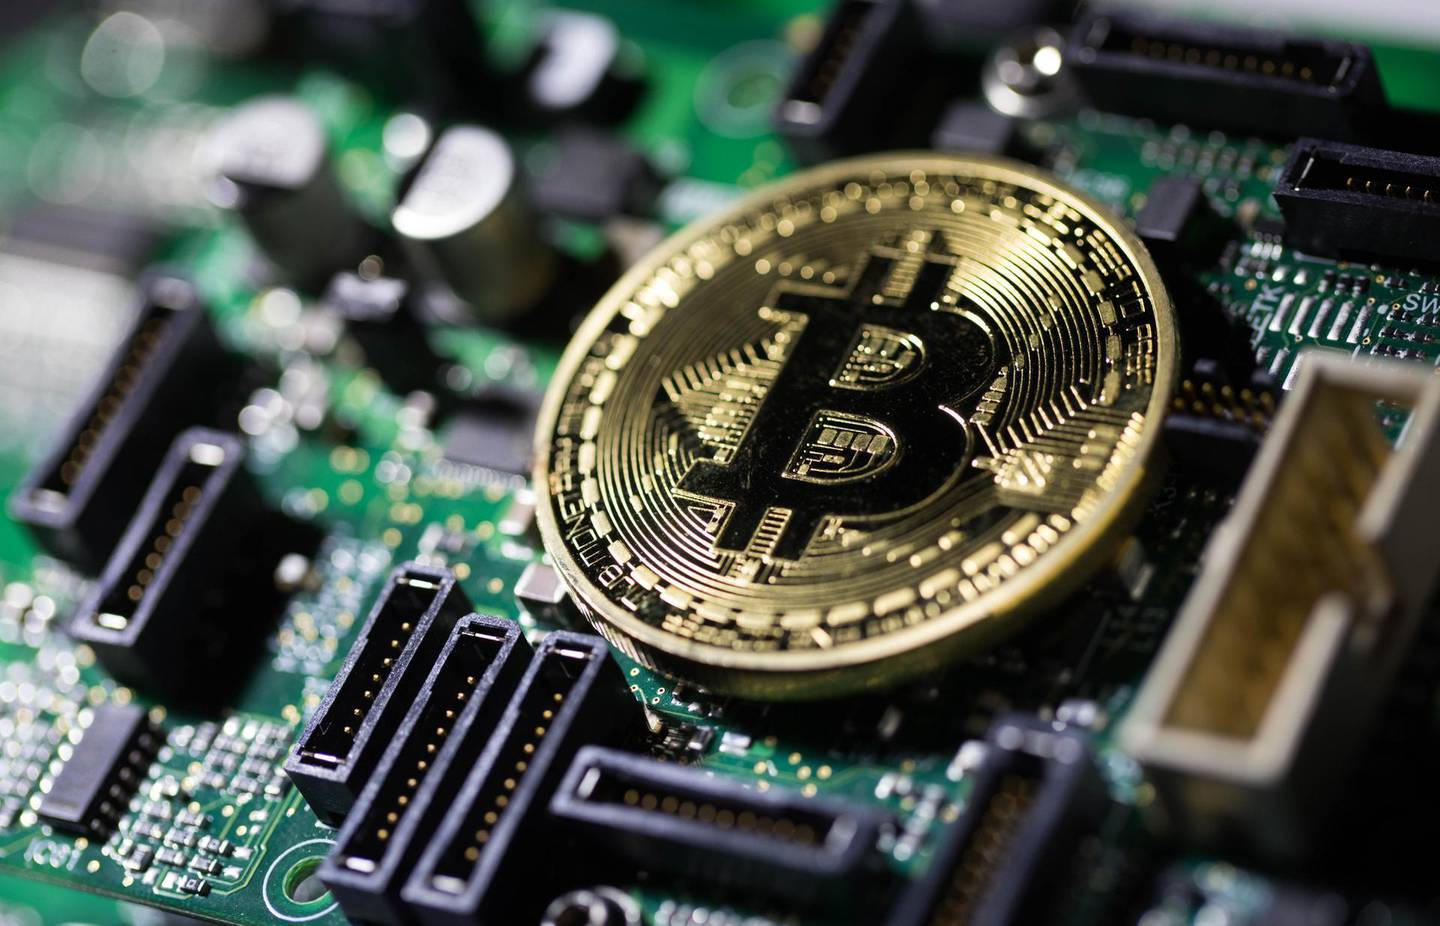 FILE: A coin representing Bitcoin cryptocurrency sits on a computer circuit board in this arranged photograph in London, U.K., on Tuesday, Feb. 6, 2018. The great cryptocurrency crash of 2018 is heading for its worst week yet. Bitcoin sank toward $4,000 and most of its peers tumbled on Friday, extending the Bloomberg Galaxy Crypto Index's weekly decline to 25 percent. That's the worst five-day stretch since crypto-mania peaked in early January. Photographer: Chris Ratcliffe/Bloomberg